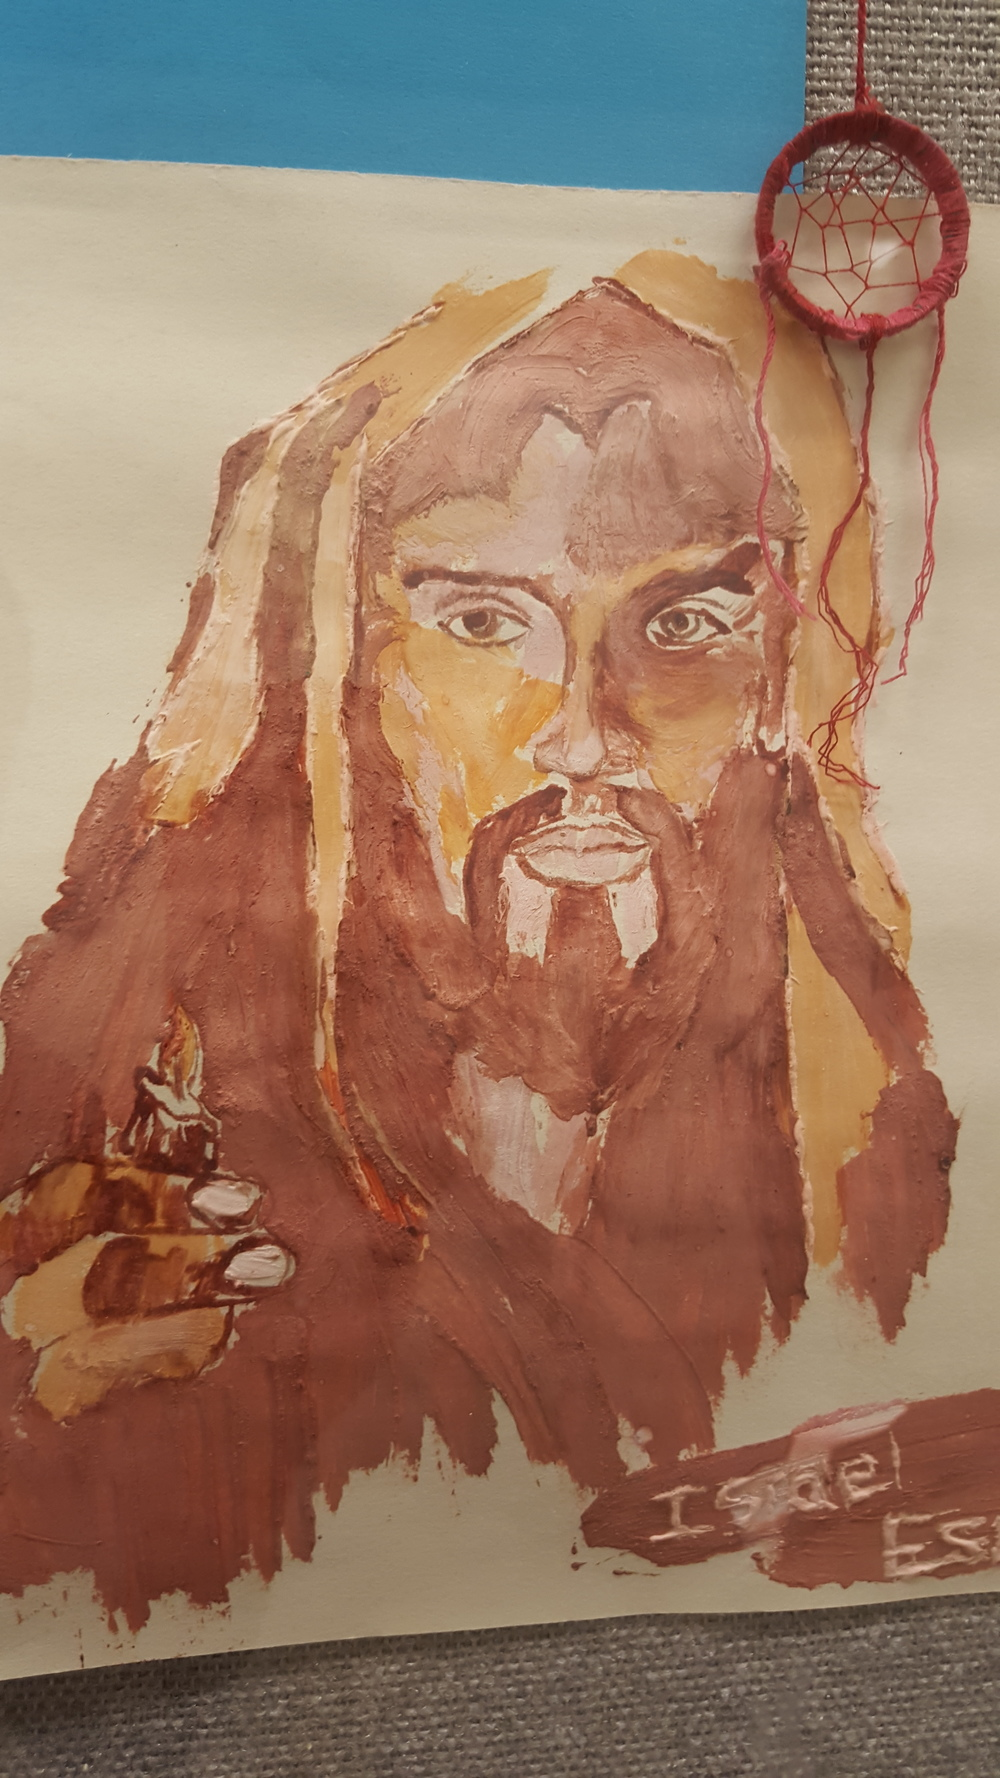 Picture of Jesus drawn by a new believer.